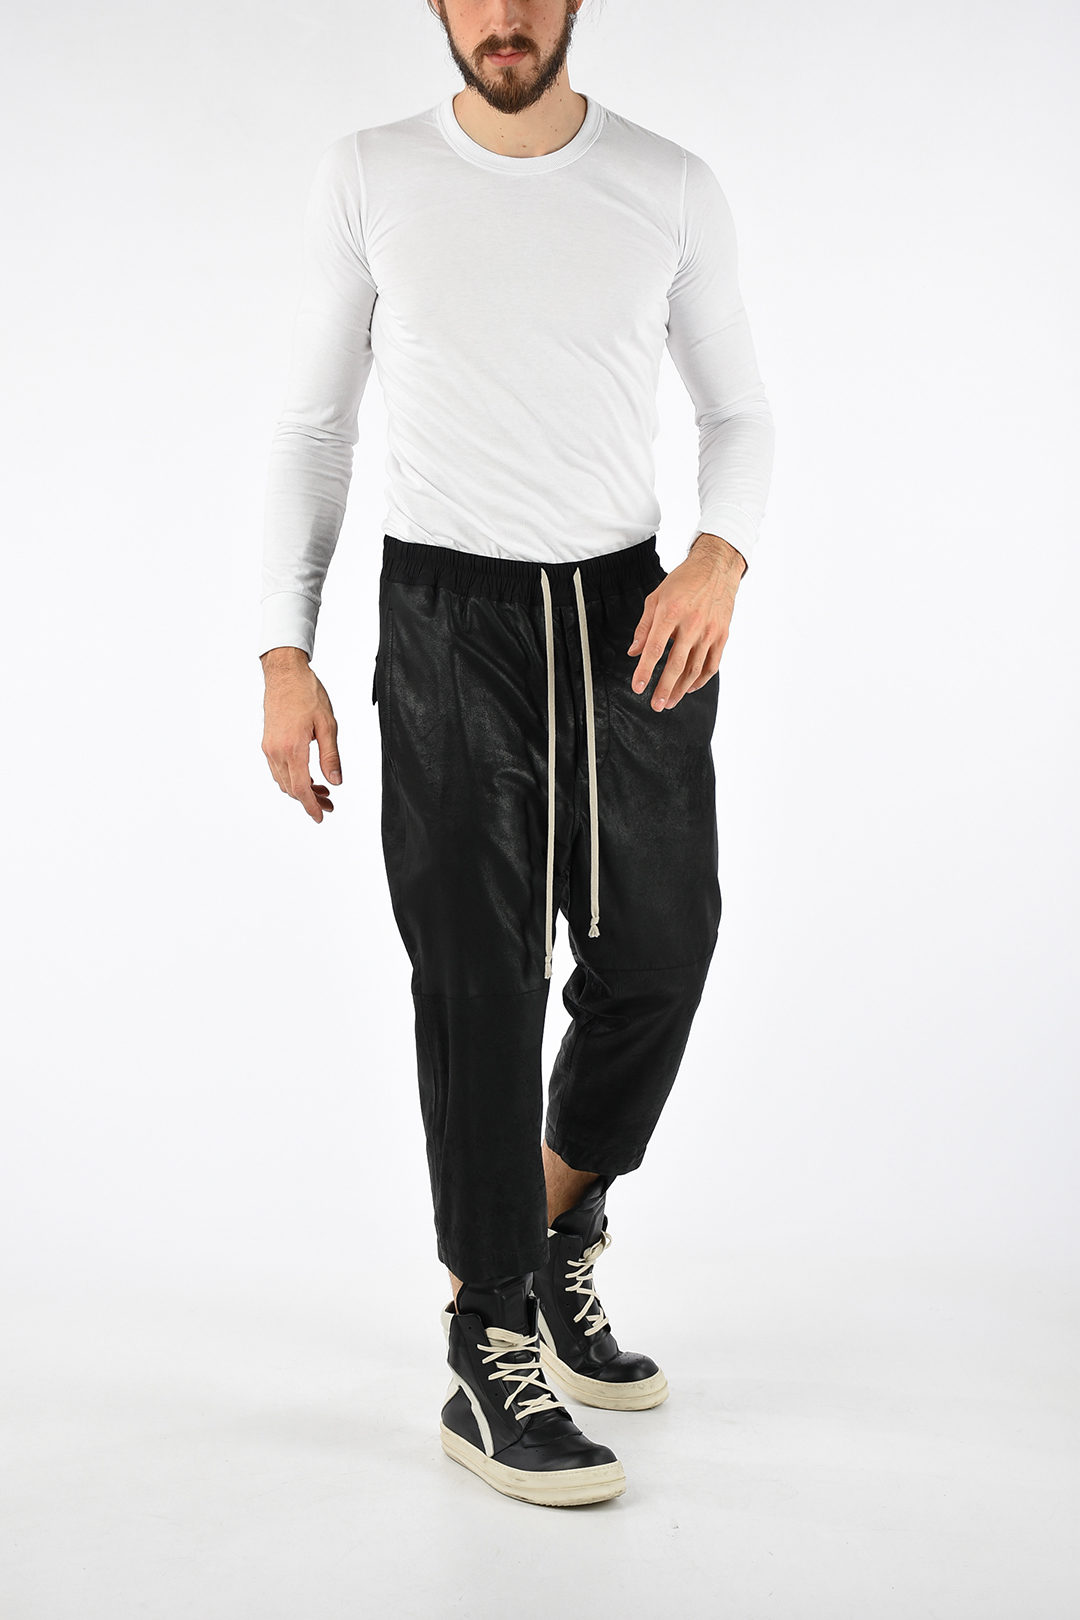 latest collection fashionable and attractive package buy online Leather DRAWSTRING ASTAIRES CROPPED Pants